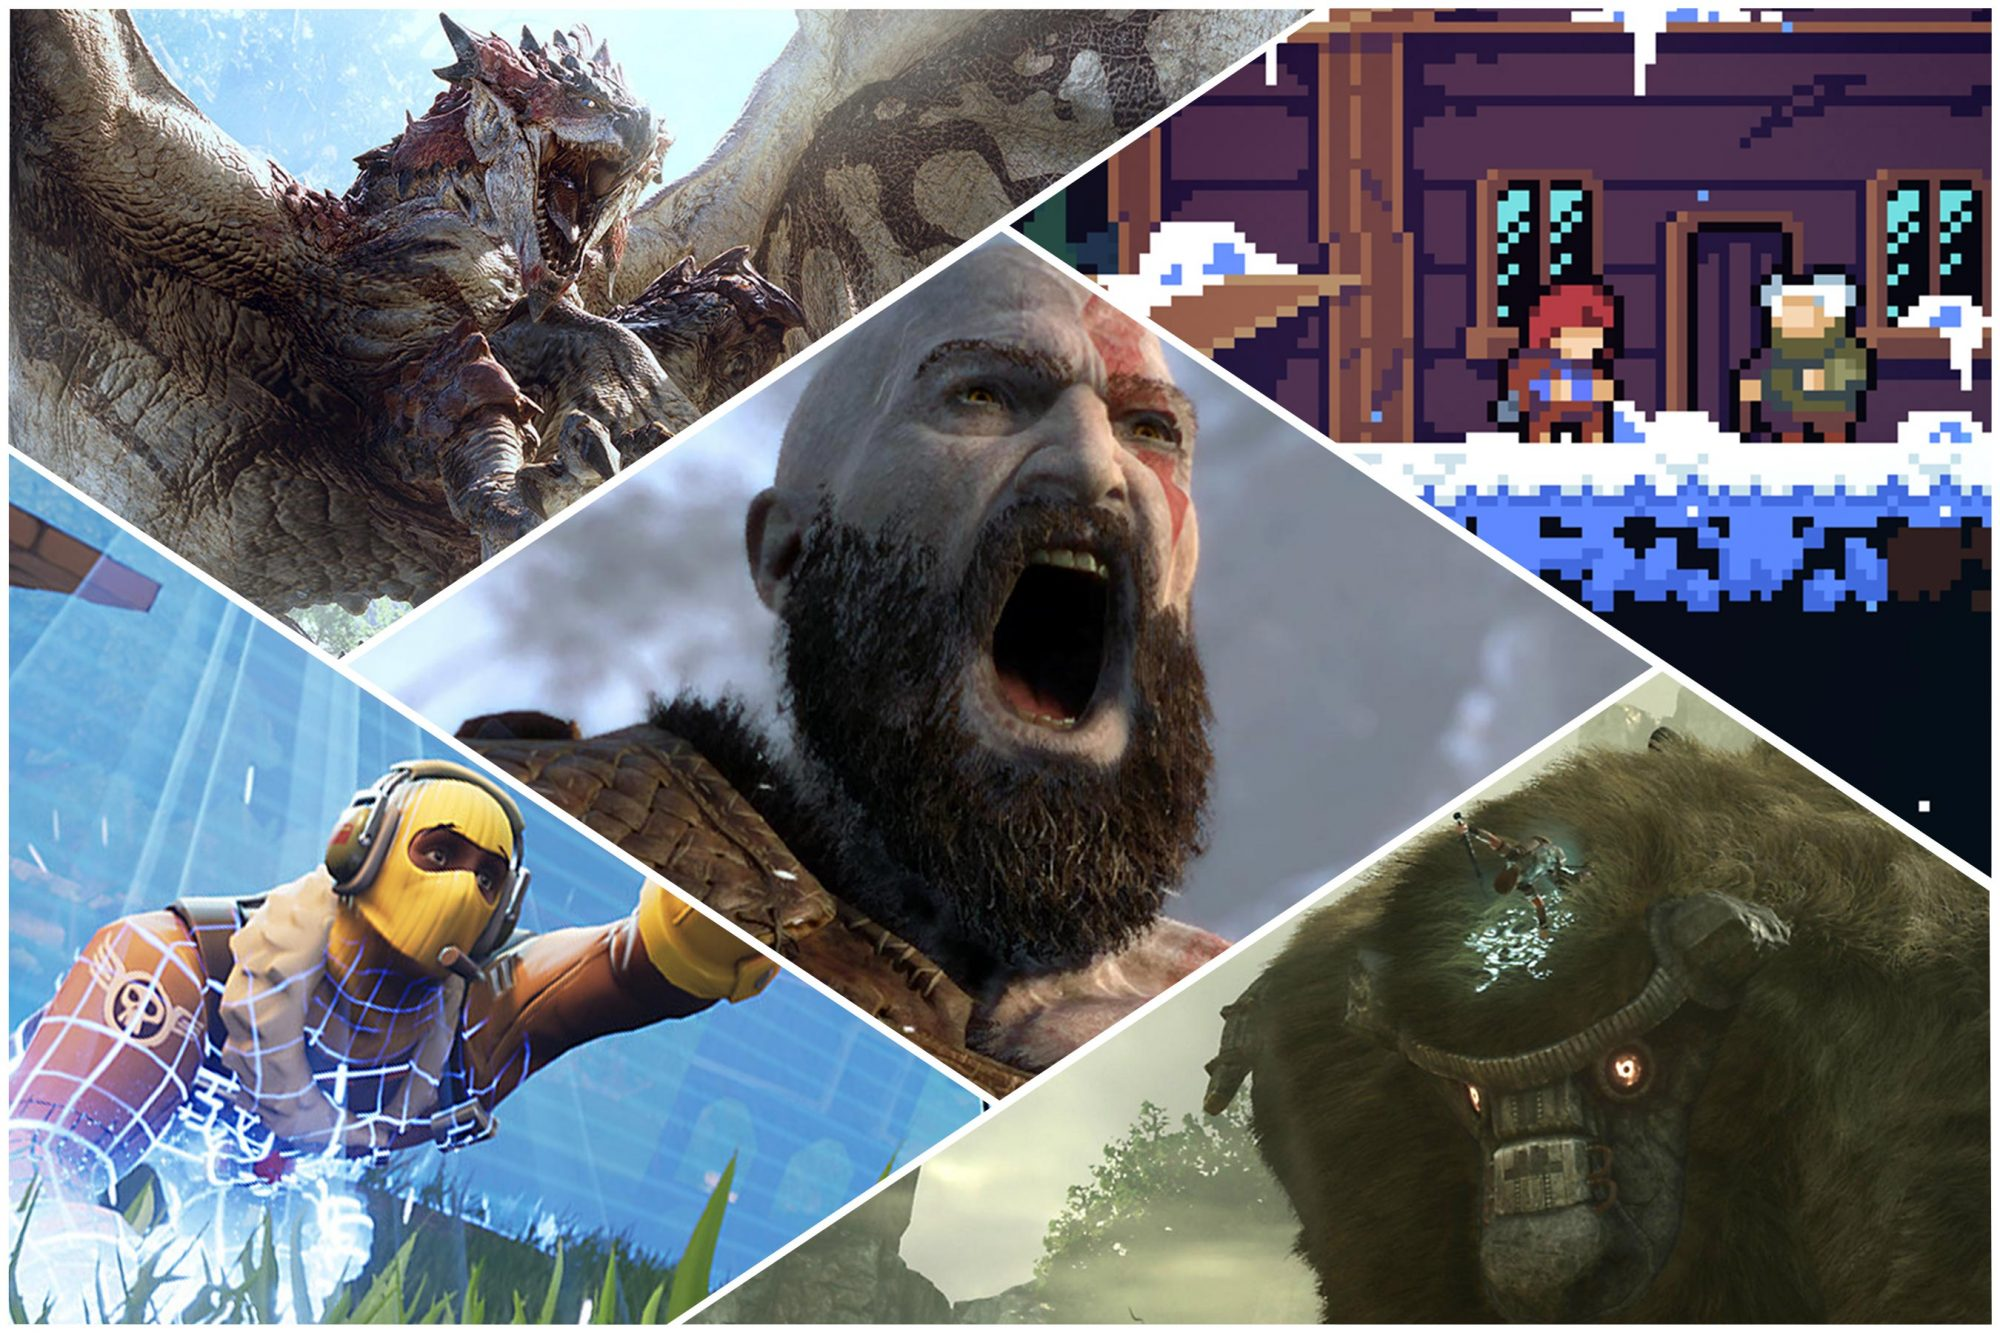 The 10 best video games of 2018 (so far)